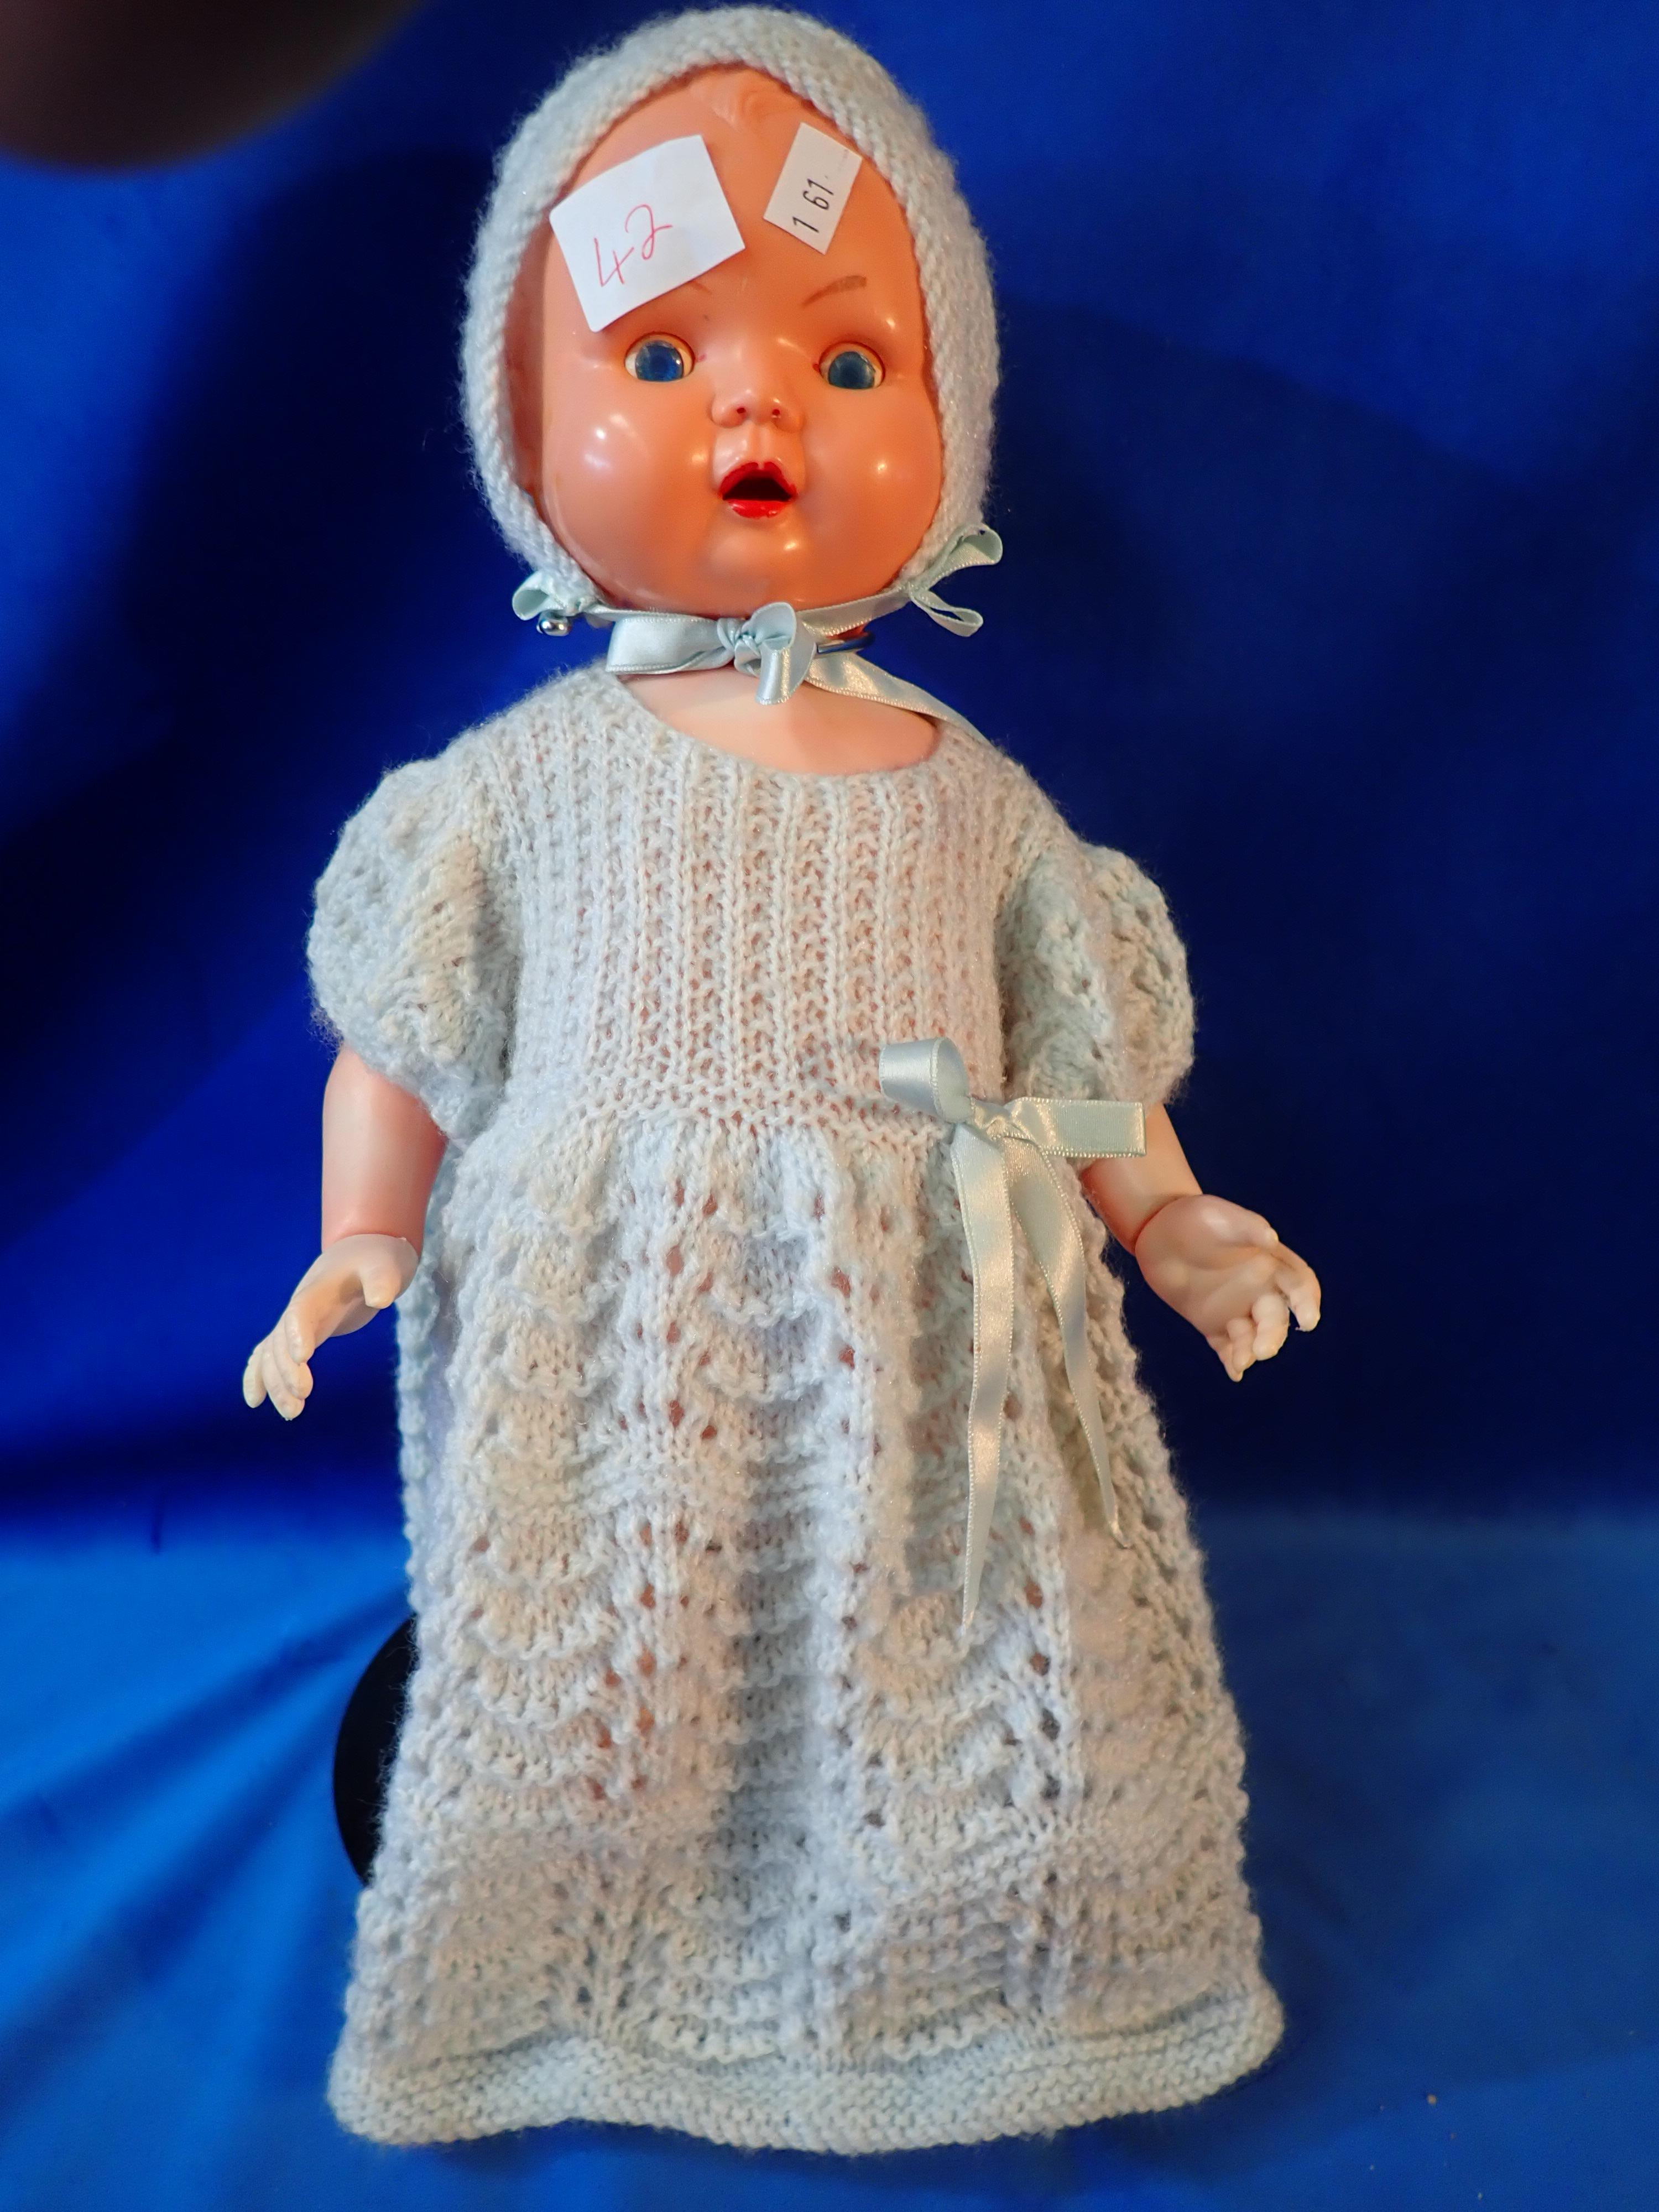 """16"""" LONG OK KADER DOLL B 3516 1/2 BH - MOVABLE BLUE EYES AND TONGUE DISCOLOURATION TO PART OF THE BODY"""